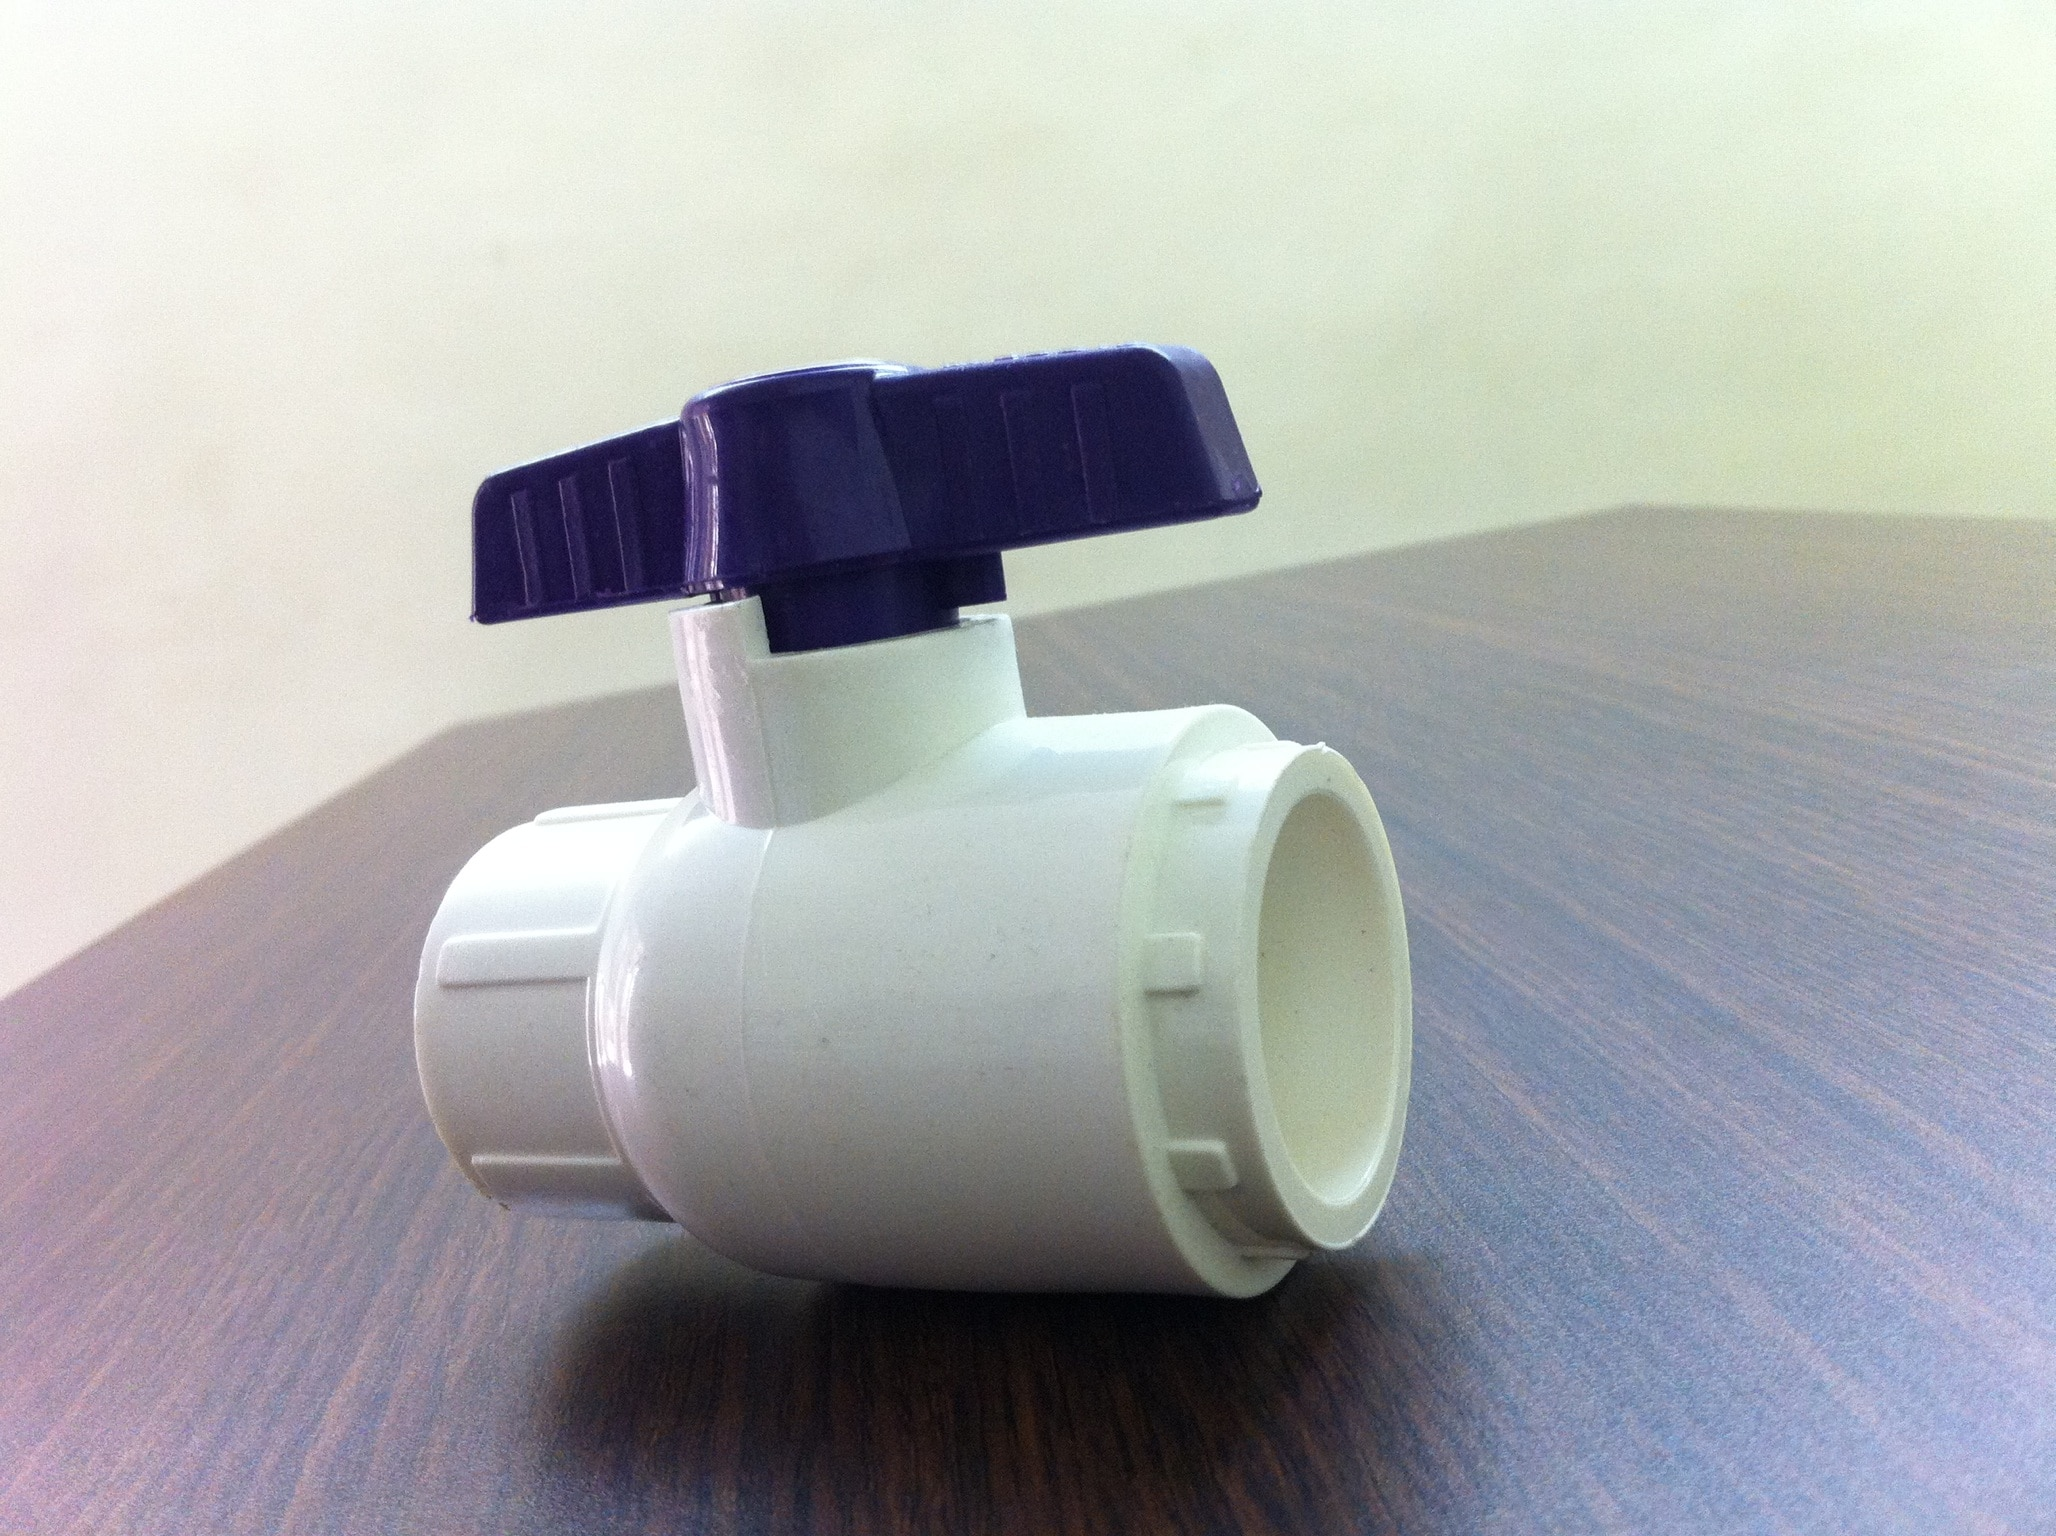 sharing you exclusively how to make home made ball valve  https://www.youtube.com/watch?v=kn72oMTokIM